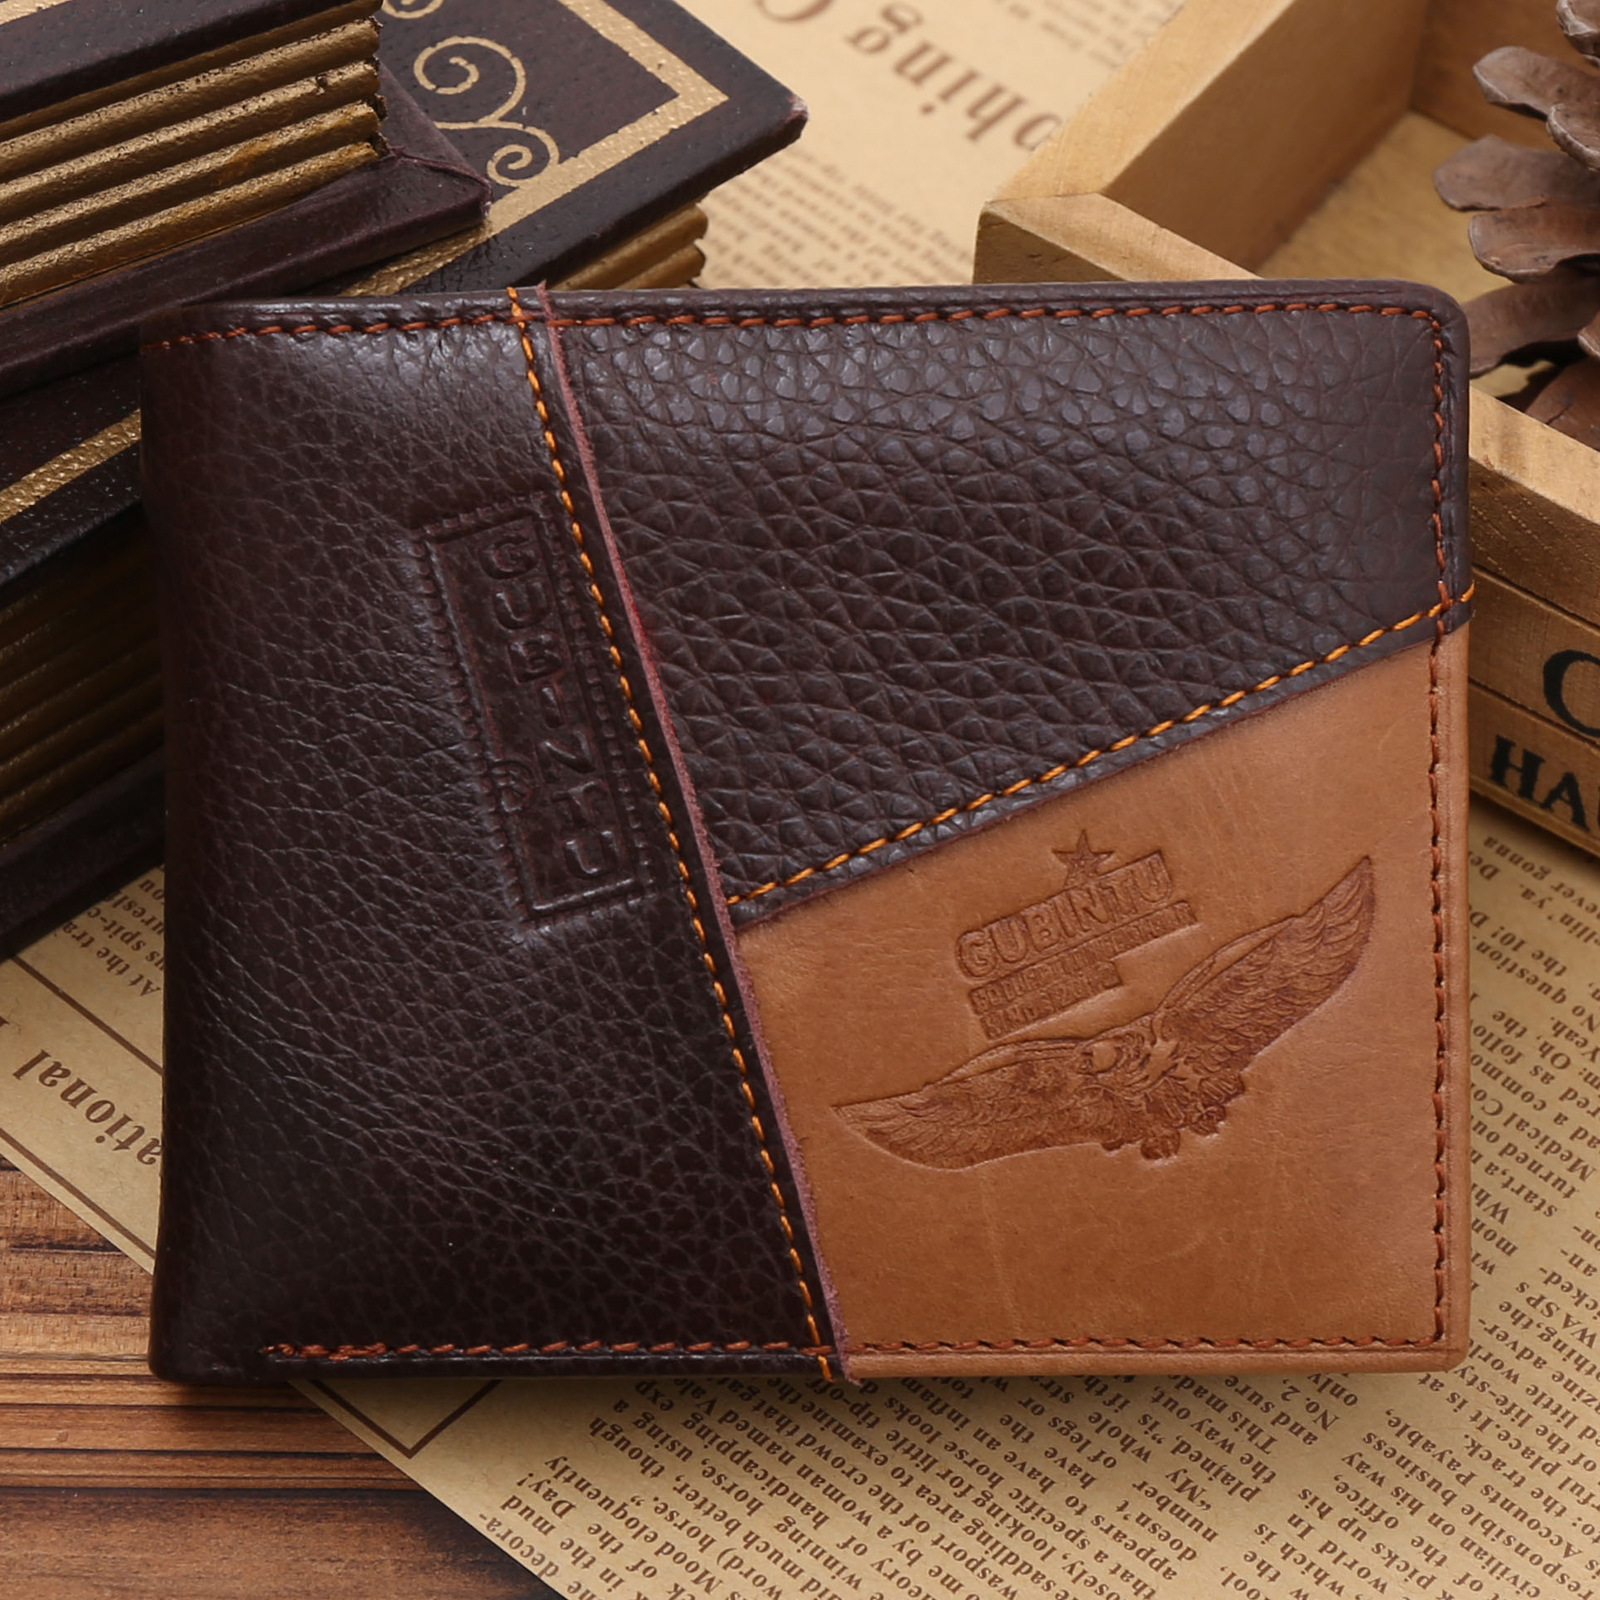 2016 Coin Purse Genuine Leather Card Holder Wallet Men With Zipper Coin Pocket Fashion Brand Quality Wallets Carteira Men Wallet<br><br>Aliexpress